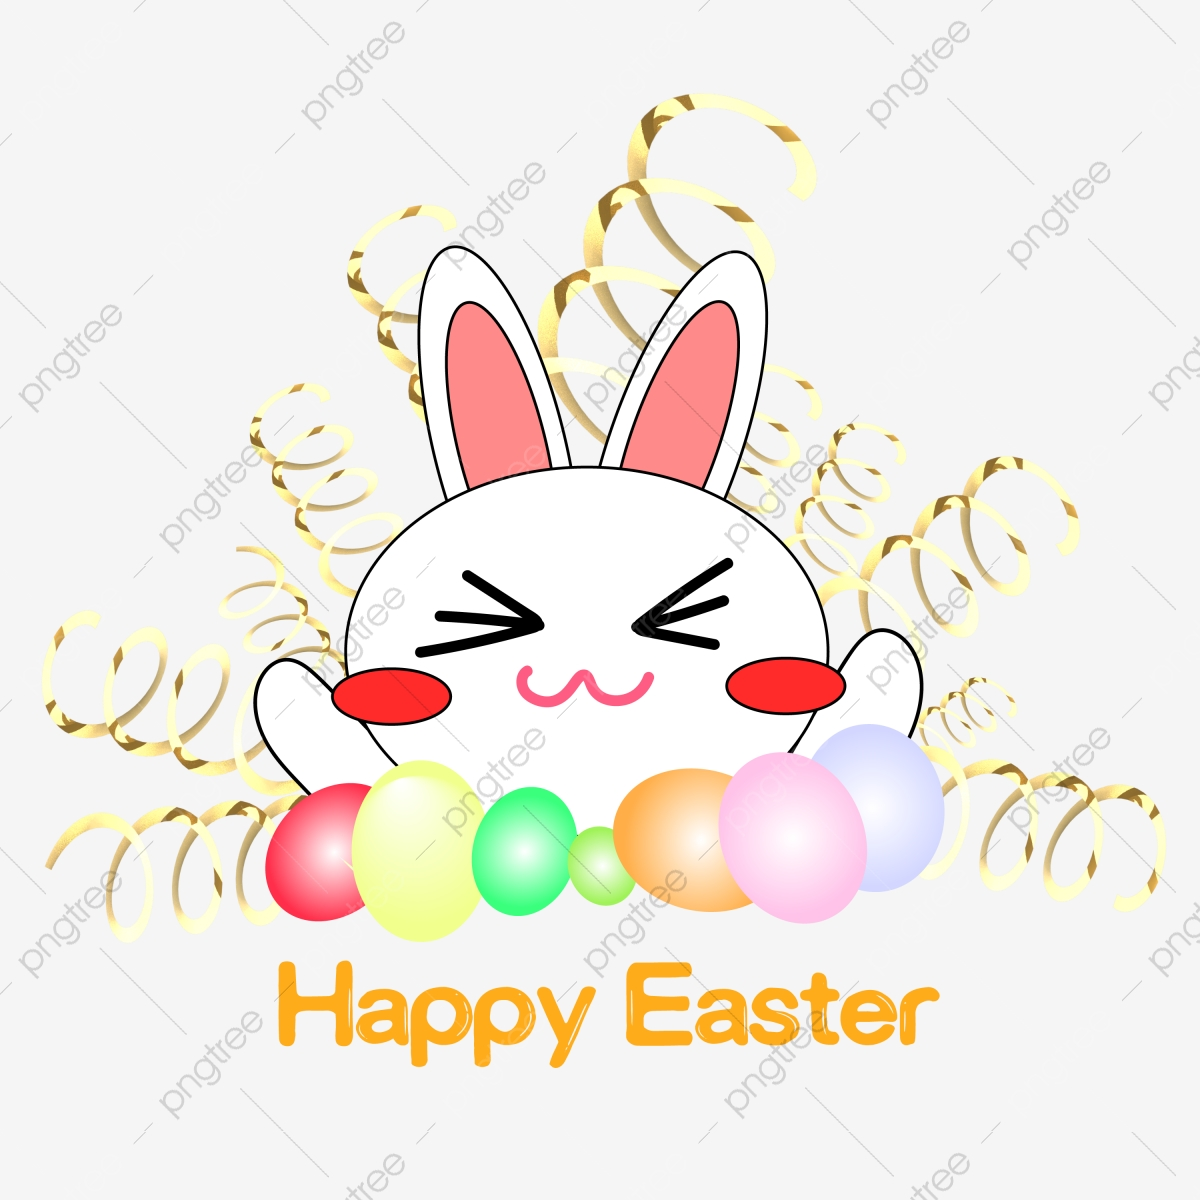 Happy Easter Bunny Clipart Happy Easter Easter Bunny Easterday Bunny Png And Vector With Transparent Background For Free Download